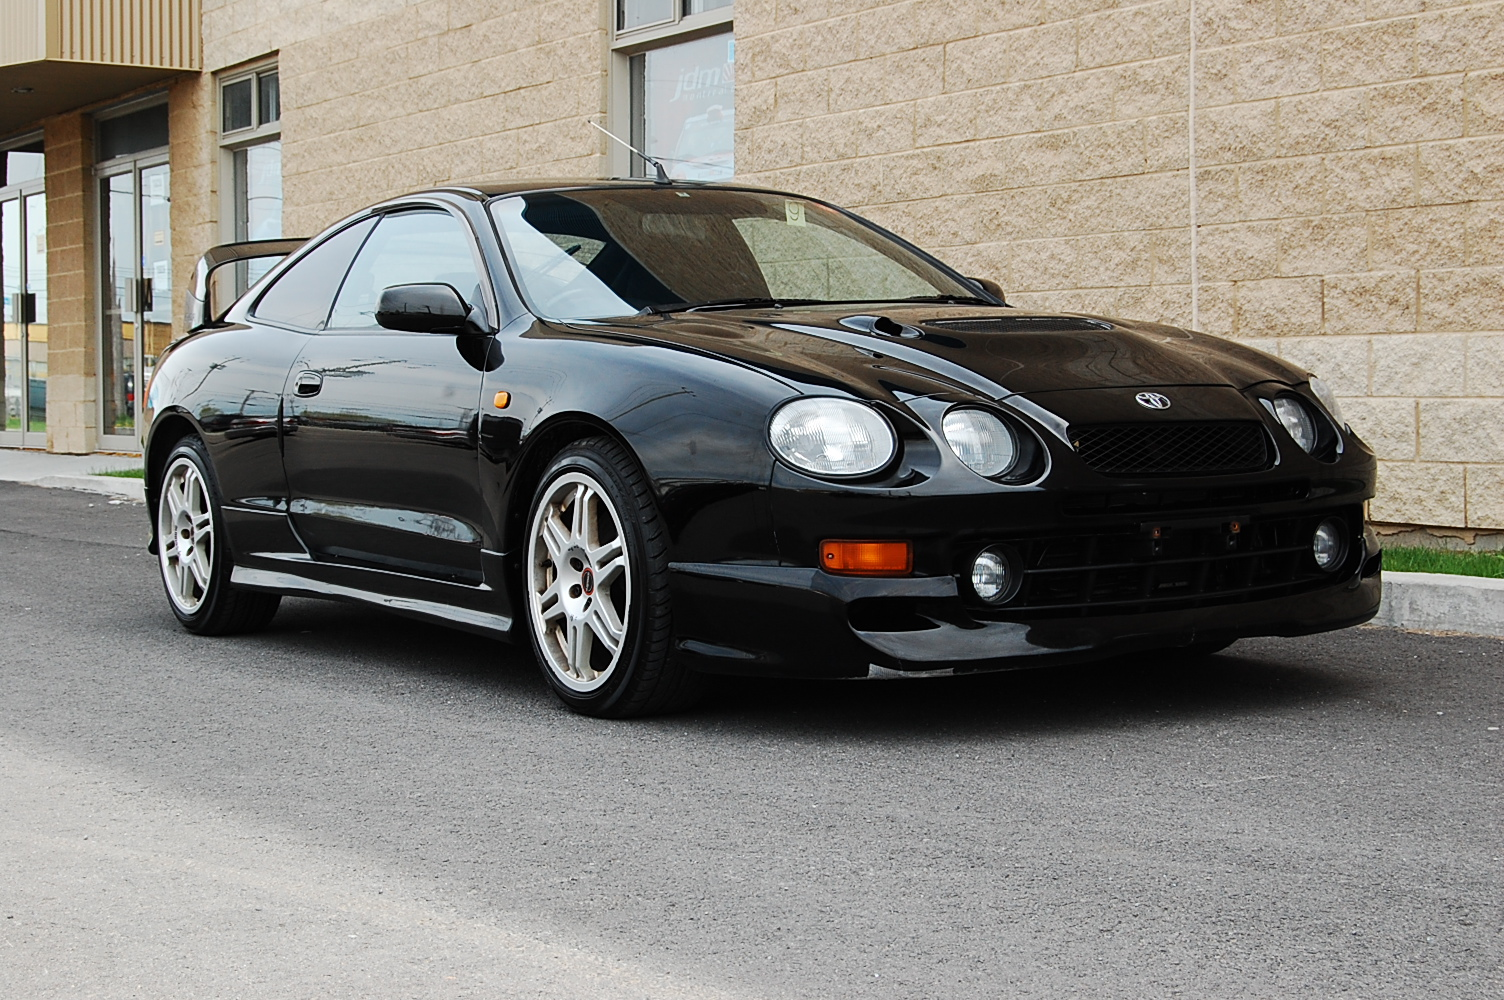 2015 Dodge Neon >> 3DTuning of Toyota Celica GT-Four Coupe 1994 3DTuning.com ...